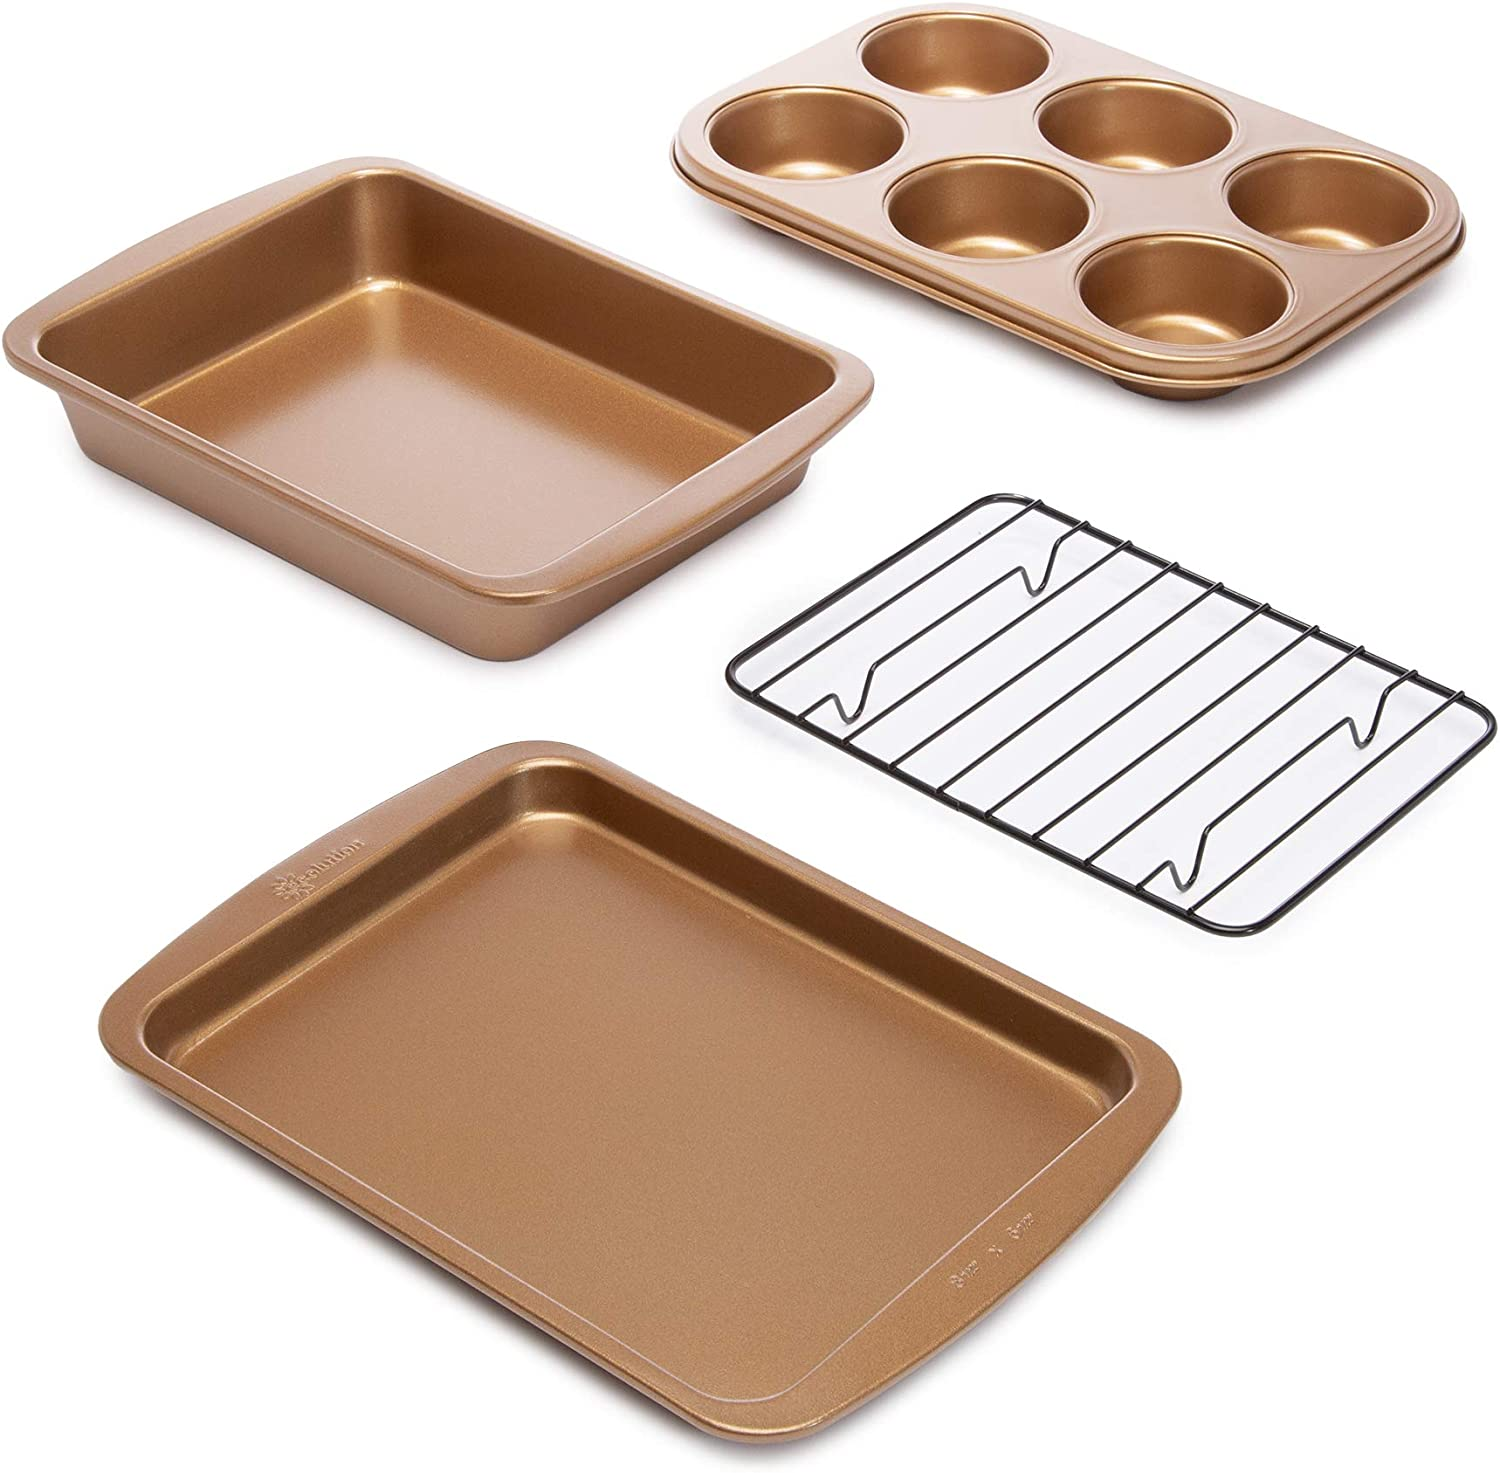 Ecolution Non-Stick Toaster Oven Bakeware Set, 4 Piece, Carbon Steel, Easy to Clean and Perfect for Single Servings, Size, Copper